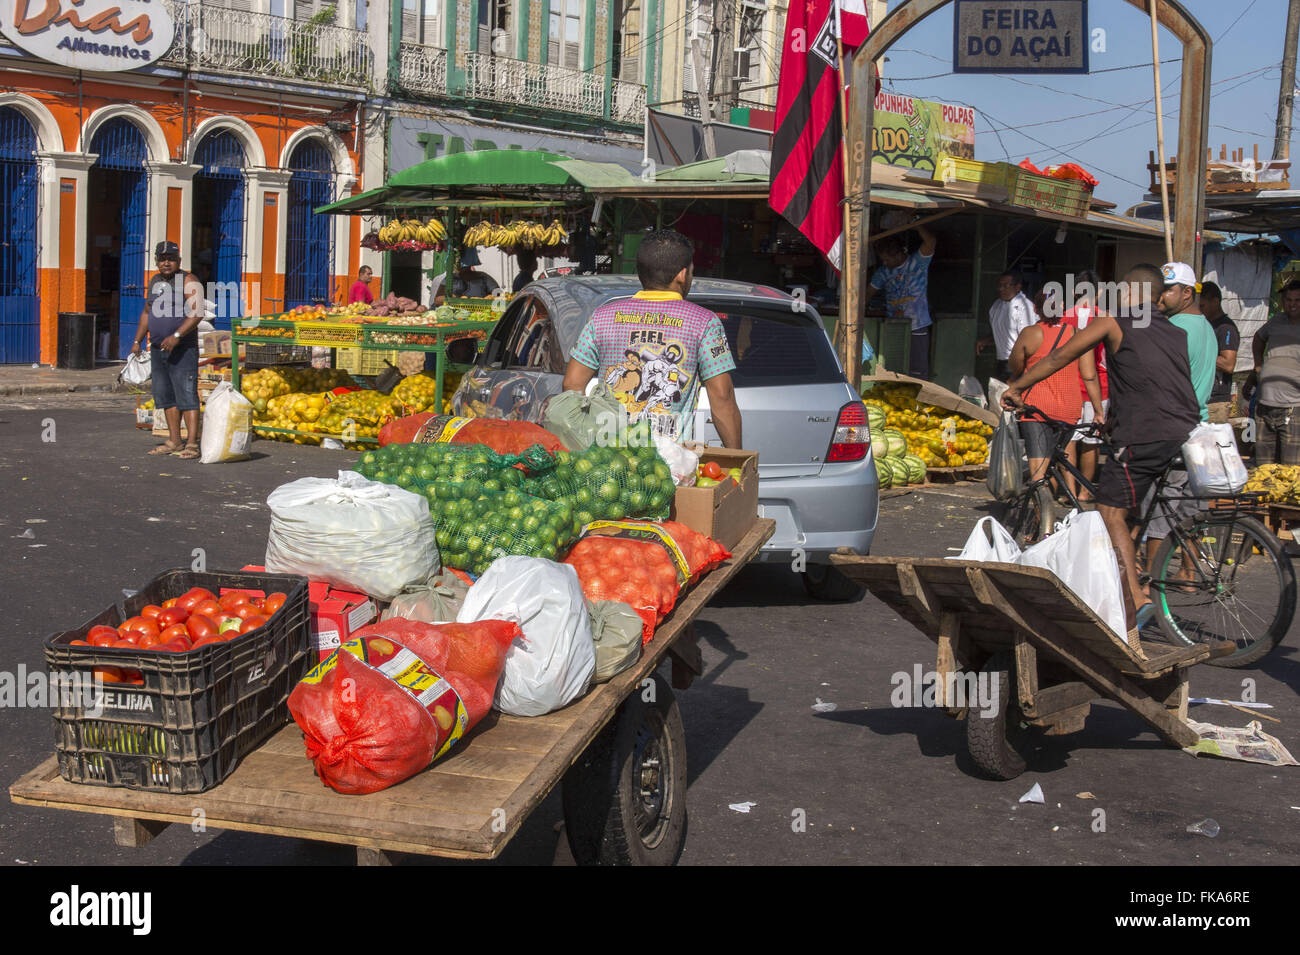 Charger with basket of fruit on Fair Acai - Stock Image